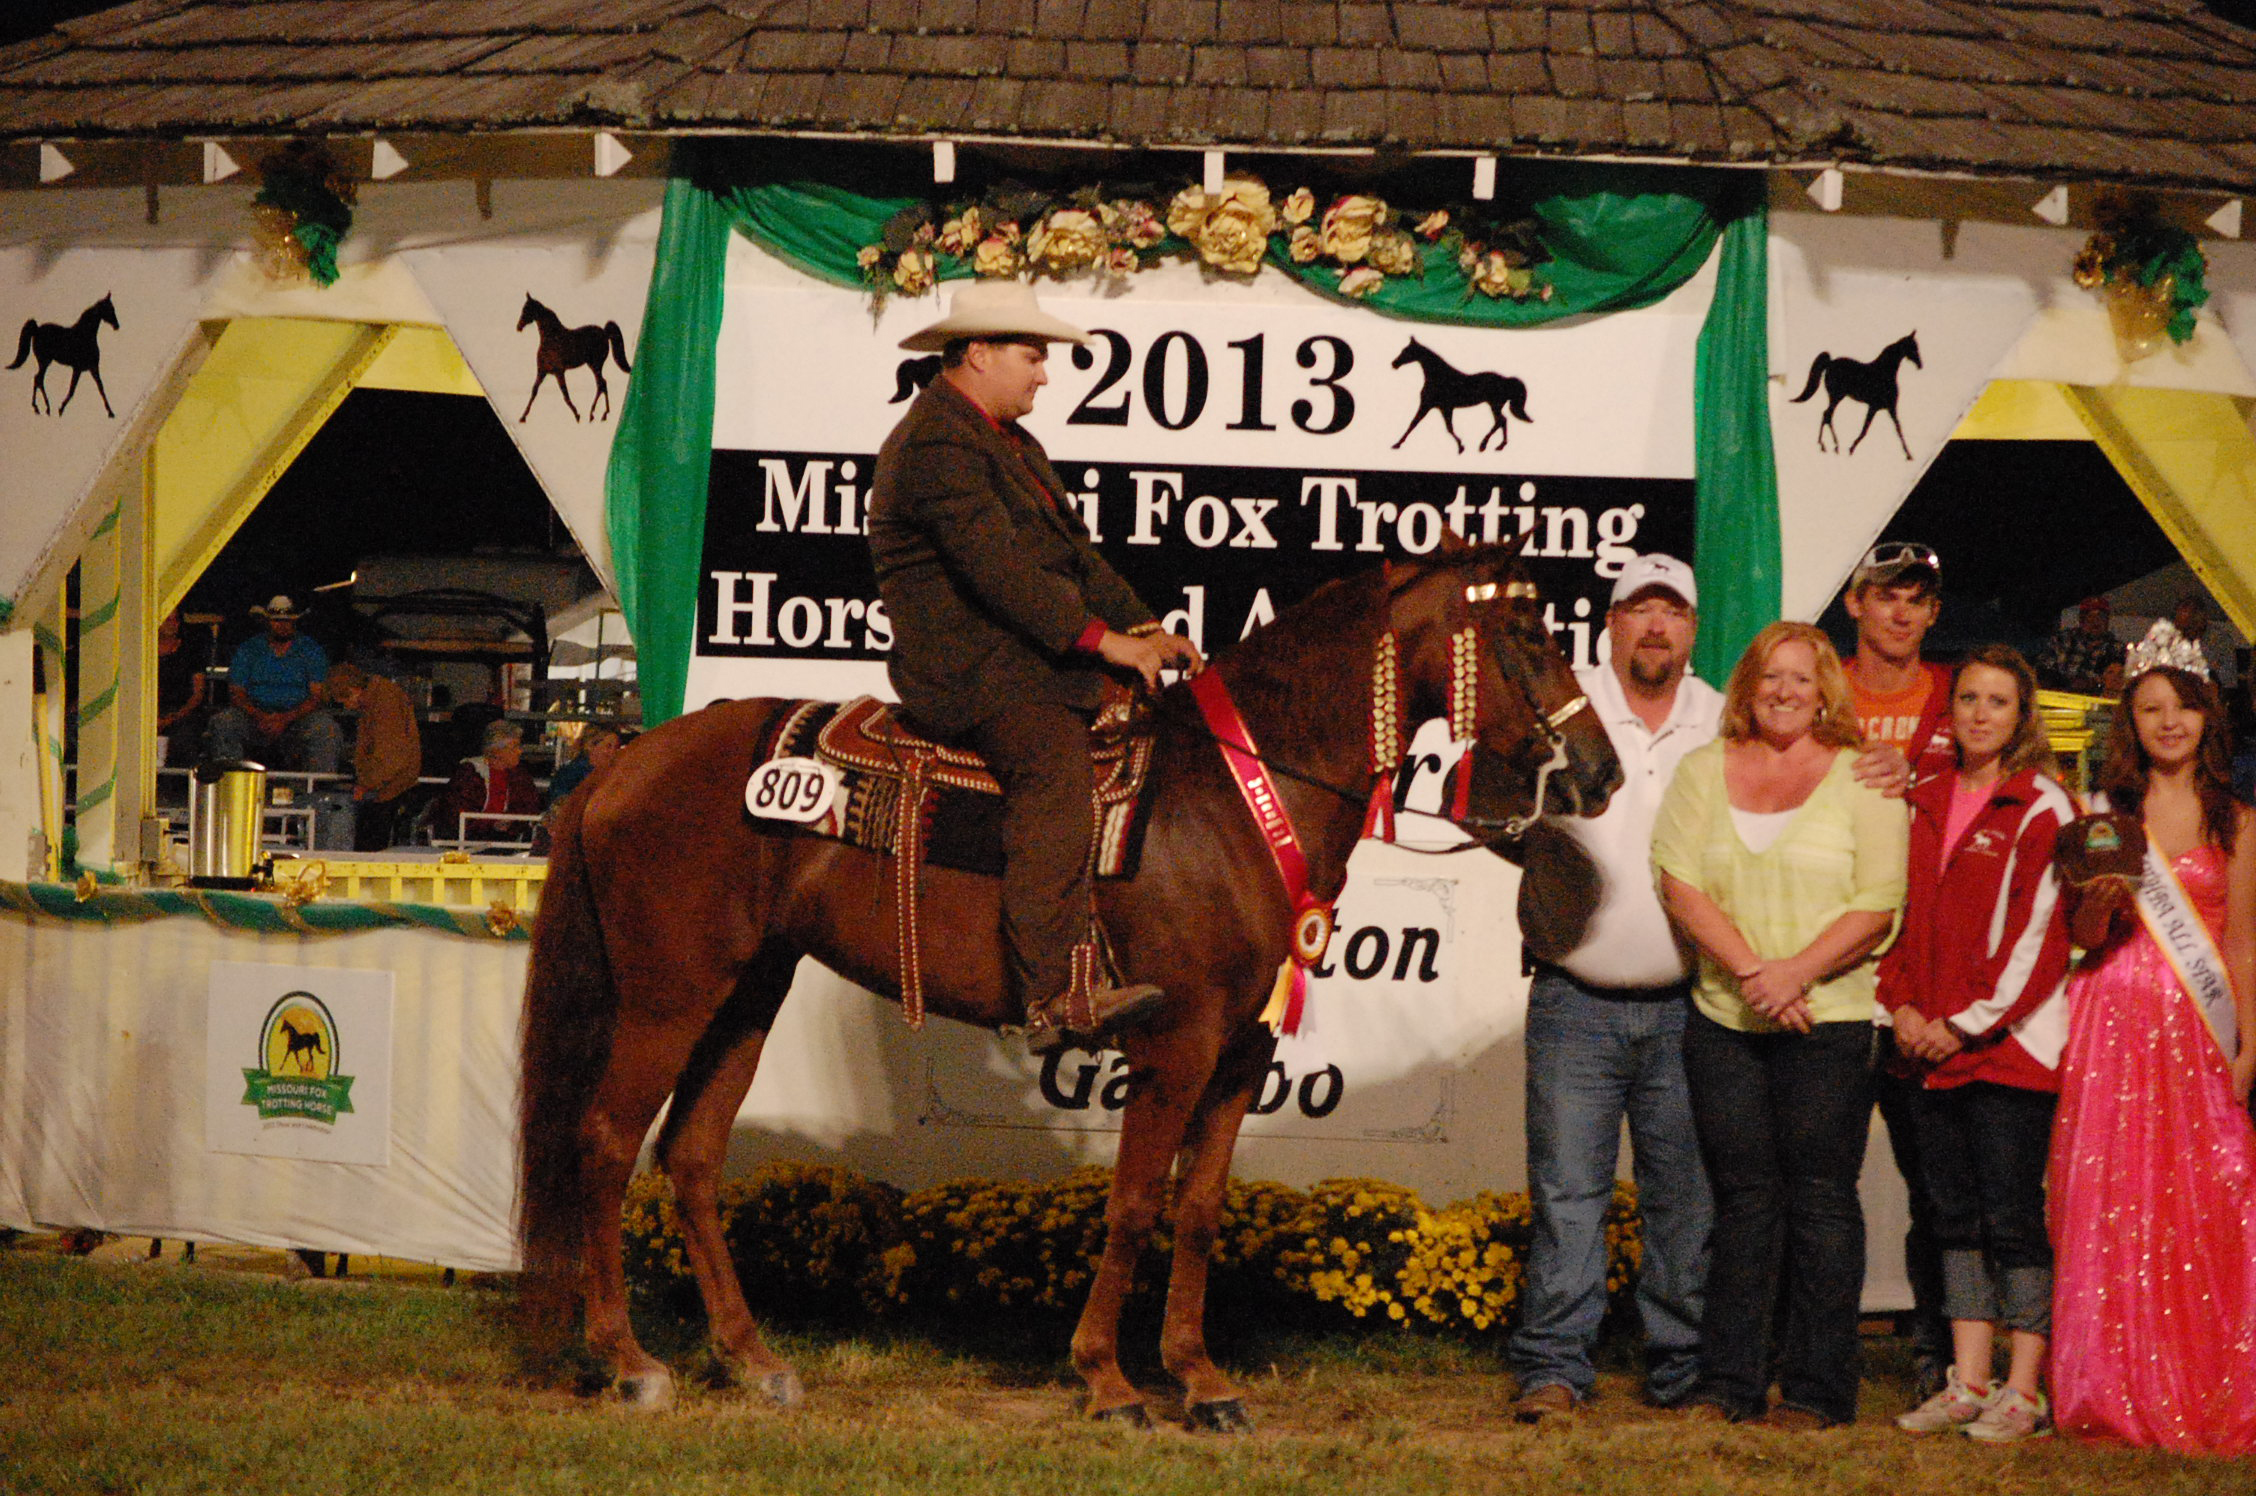 RESERVE WORLD GRAND CHAMPION of the 2013 Show and Celebration is My Hard Time, ridden by Garrett King for Joe Stewart and Jennifer Stewart, of Farmington, Ark.